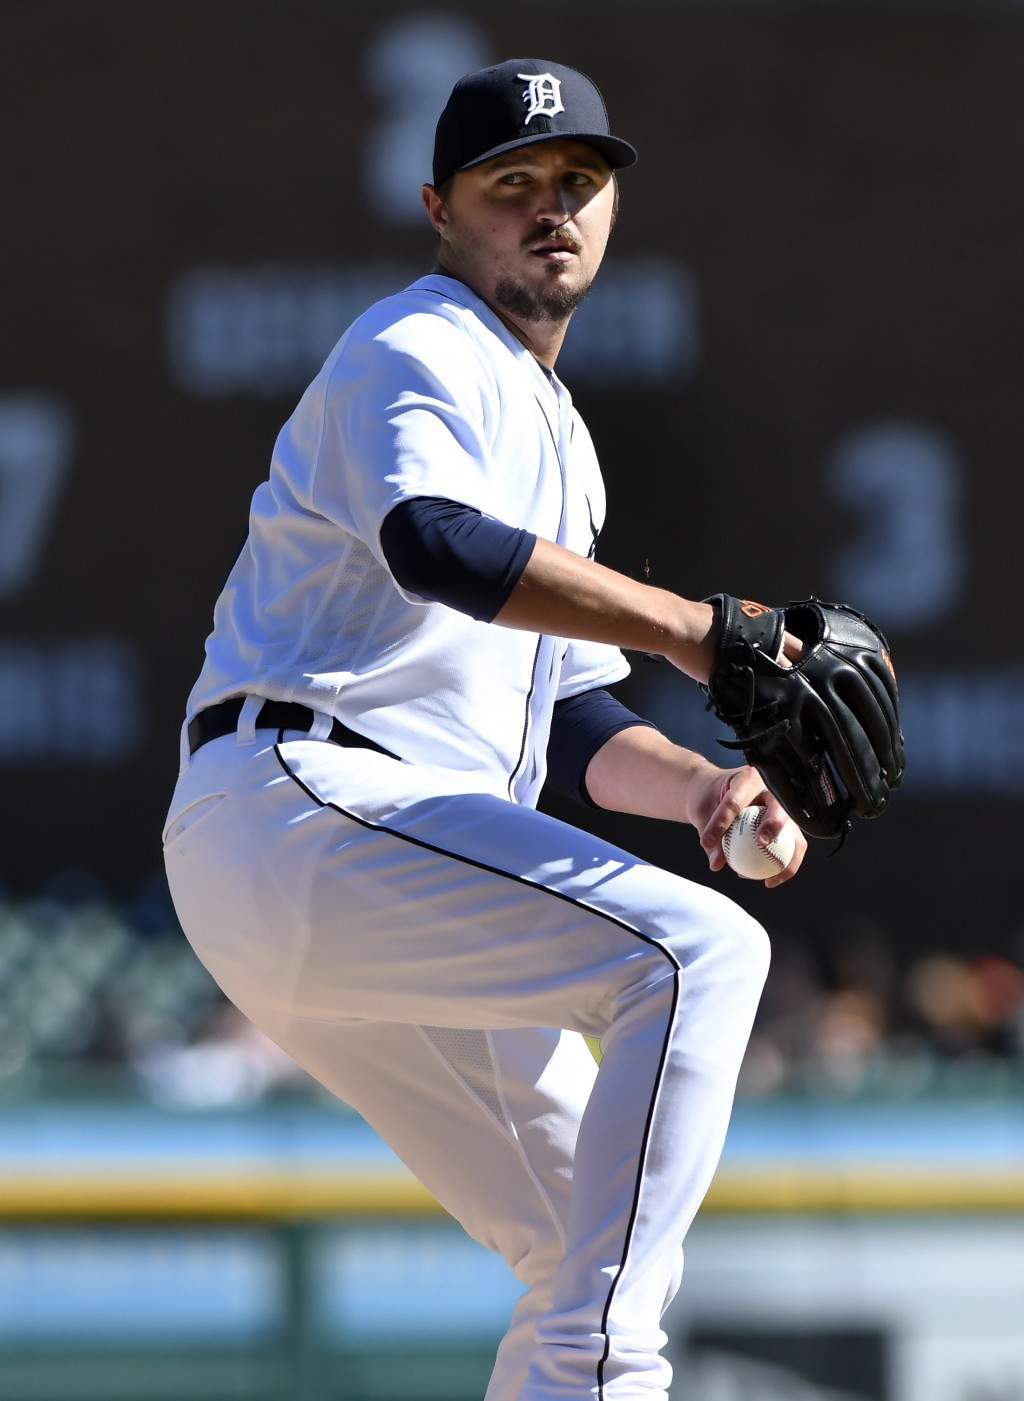 Detroit Tigers' Blaine Hardy throws against the Kansas City Royals during the seventh inning of a baseball game in Detroit, Sunday, Sept. 23, 2018. (A